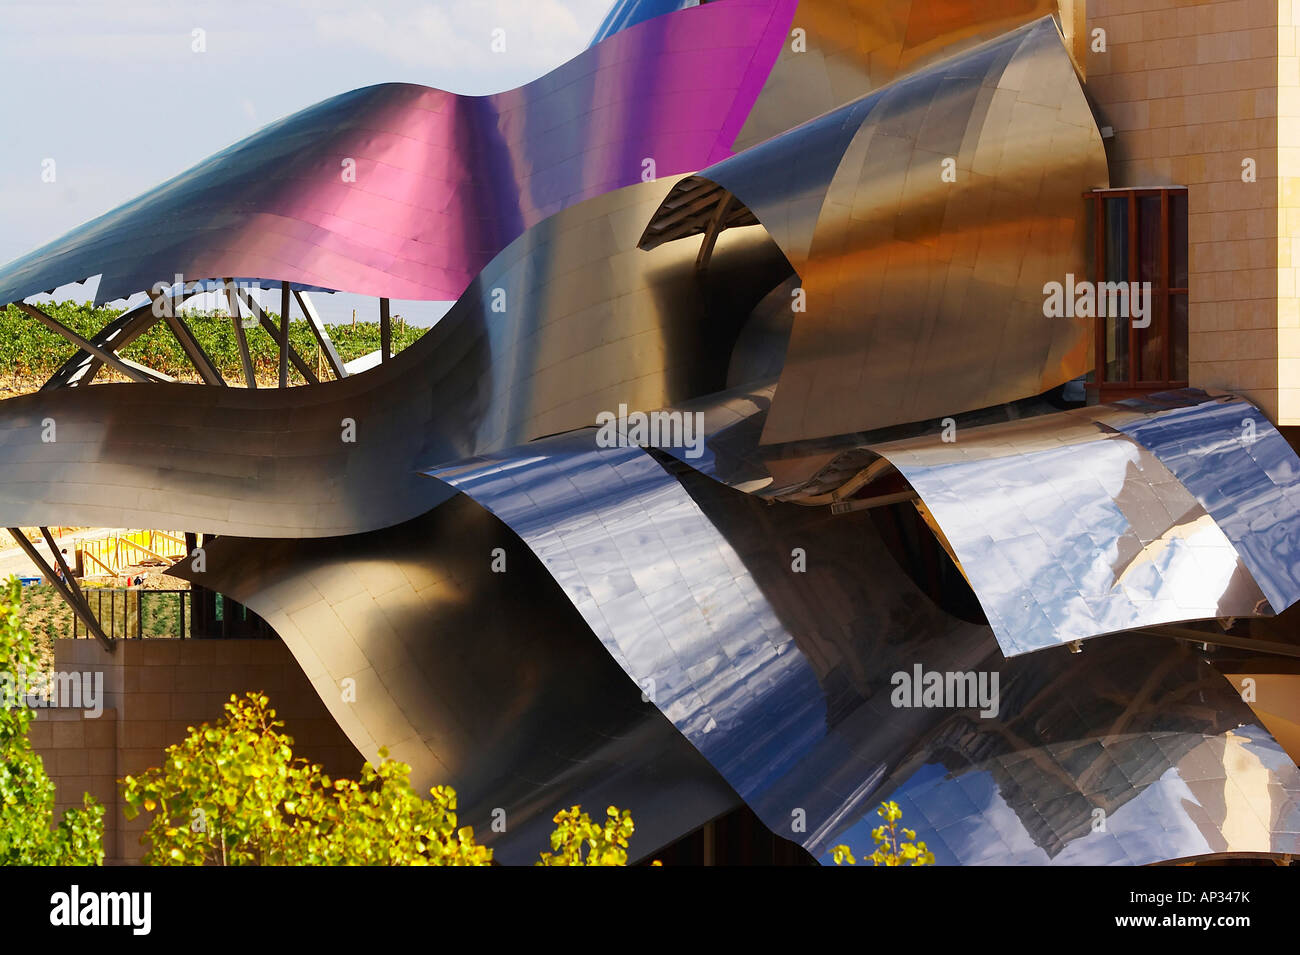 Hotel from architect Frank Gehry and Bodegas Marqués de Riscal, oldest Rioja winery, Elciego, Euskadi, País - Stock Image